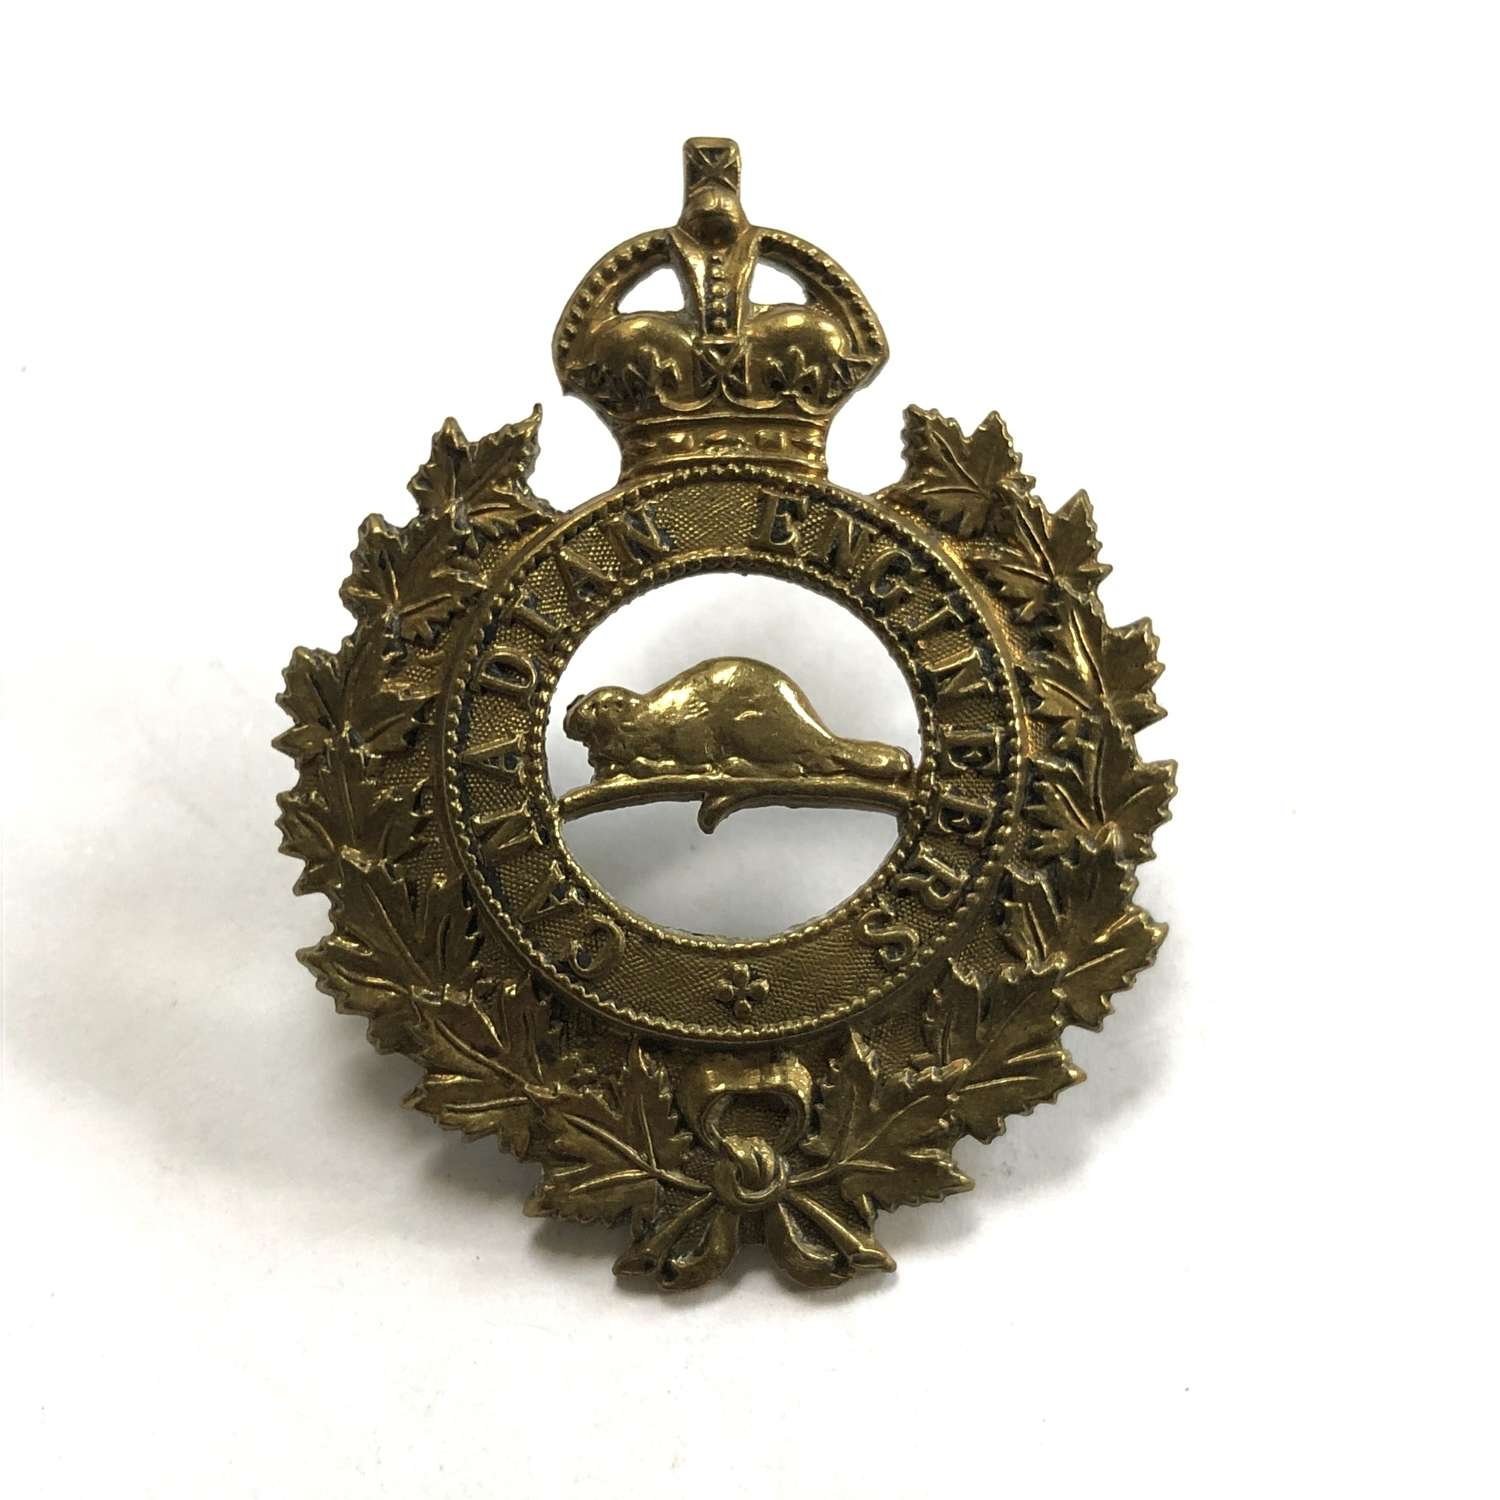 Canadian Engineers 1917 cap badge by Roden Bros Ld, Toronto